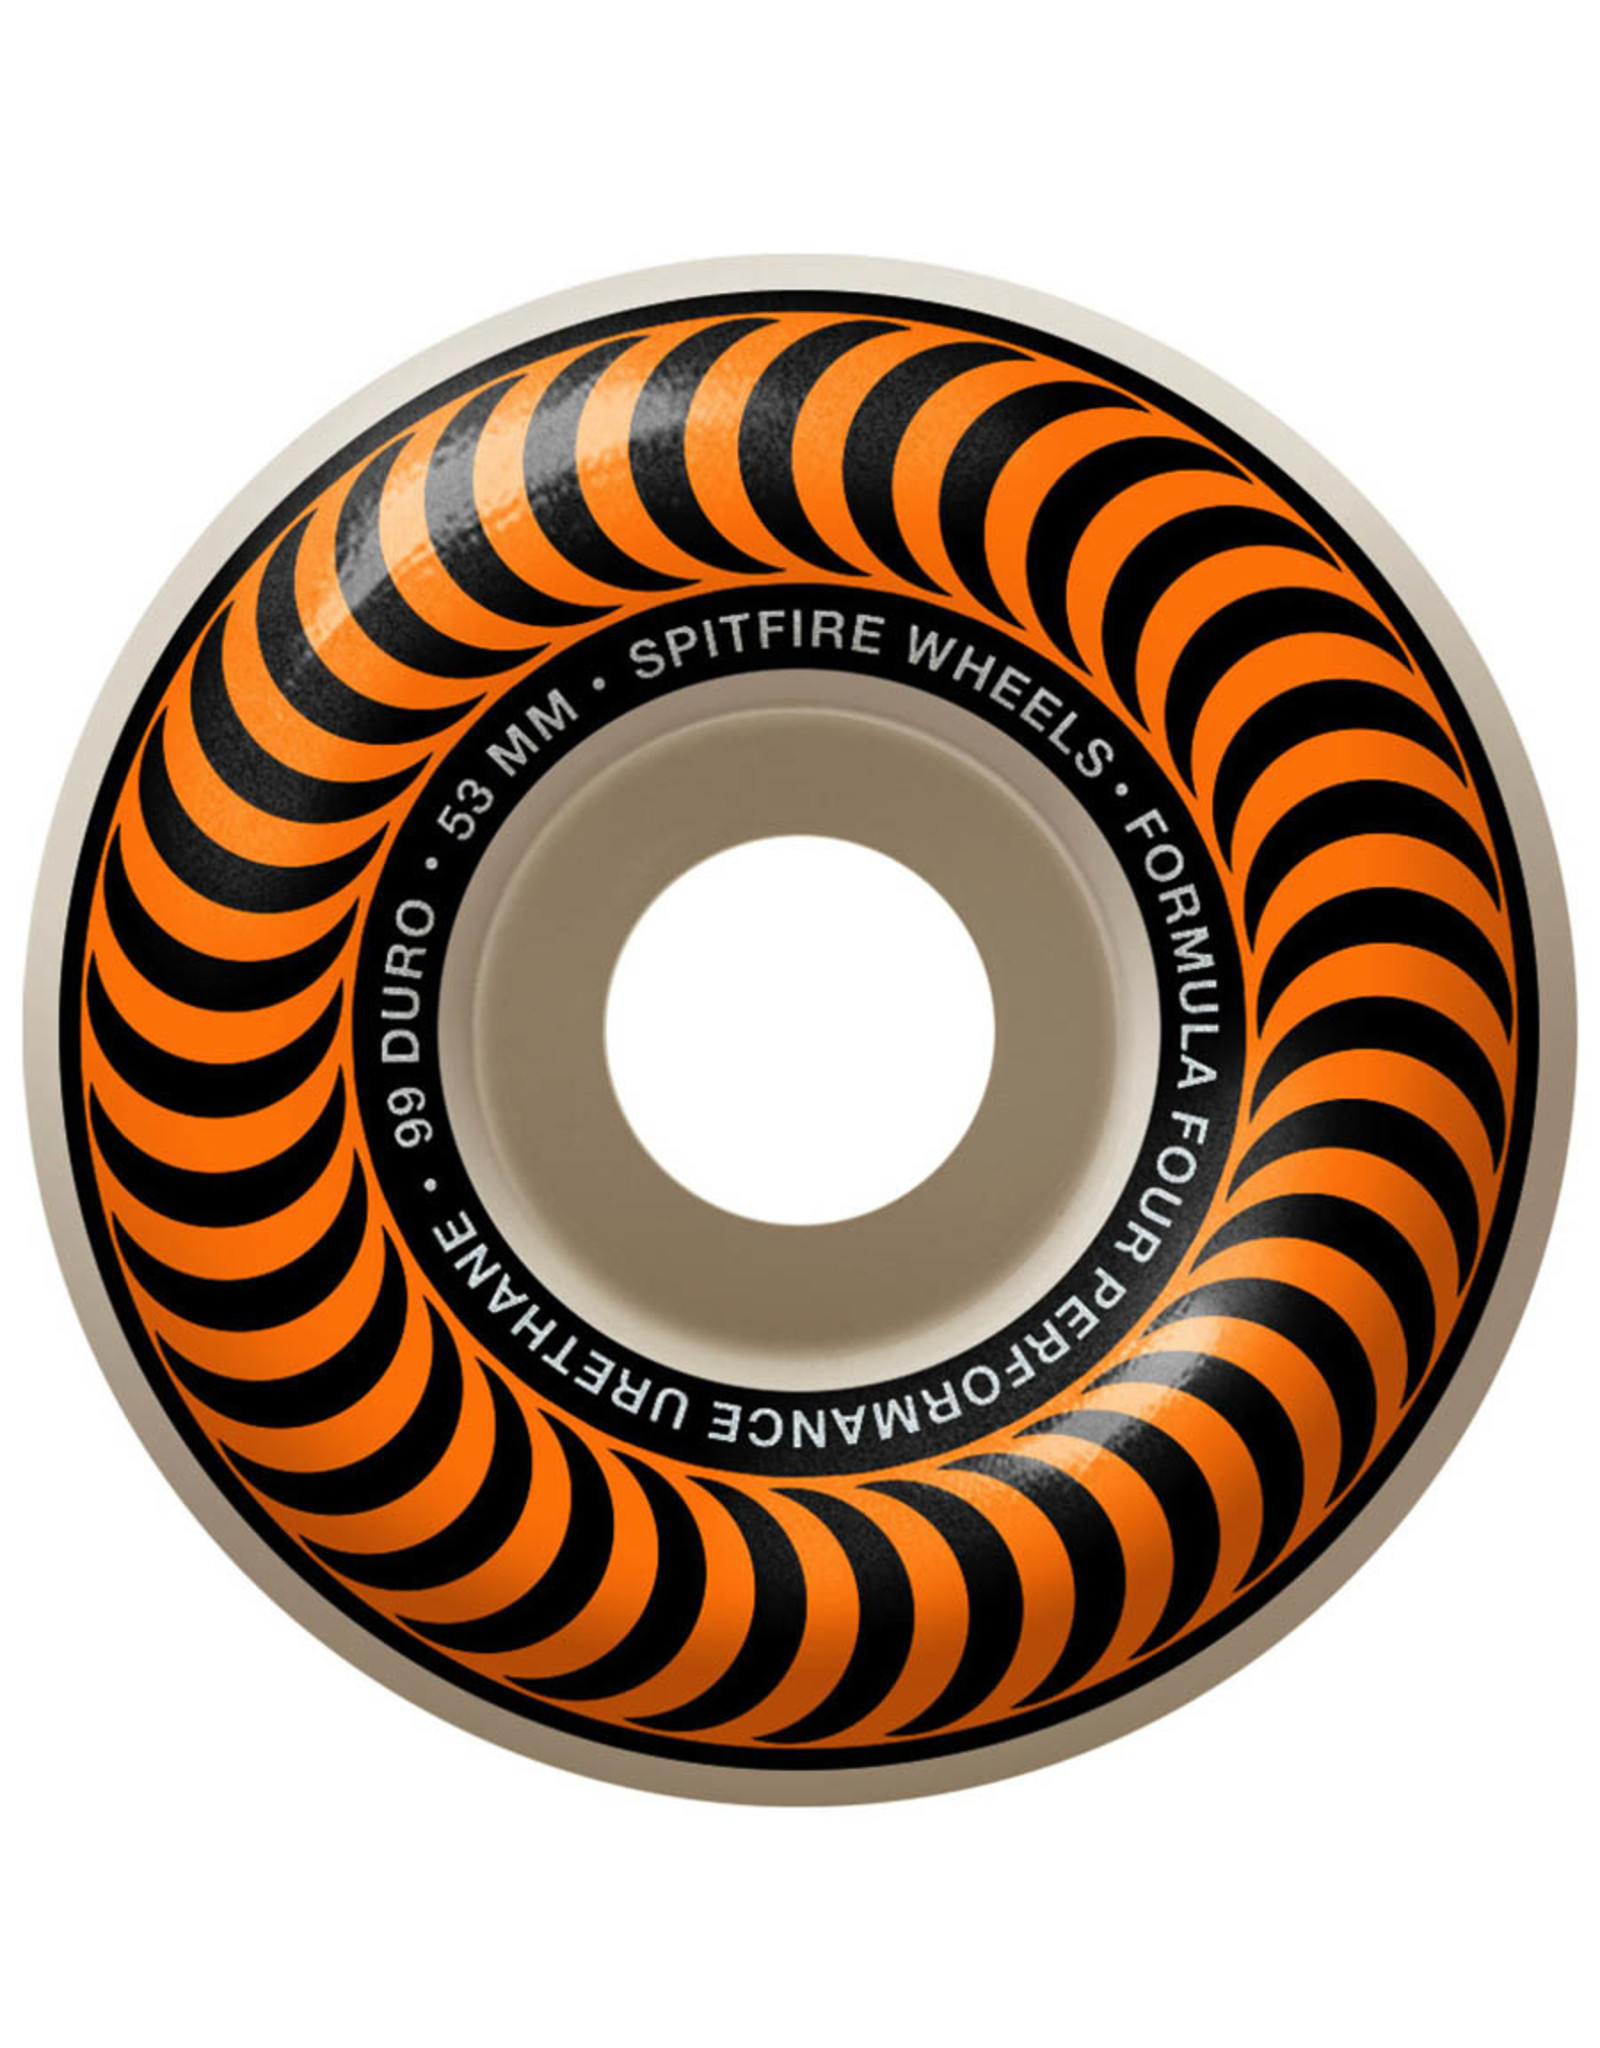 Spitfire Spitfire Wheels Formula Four Orange Classic White (53mm/99d)